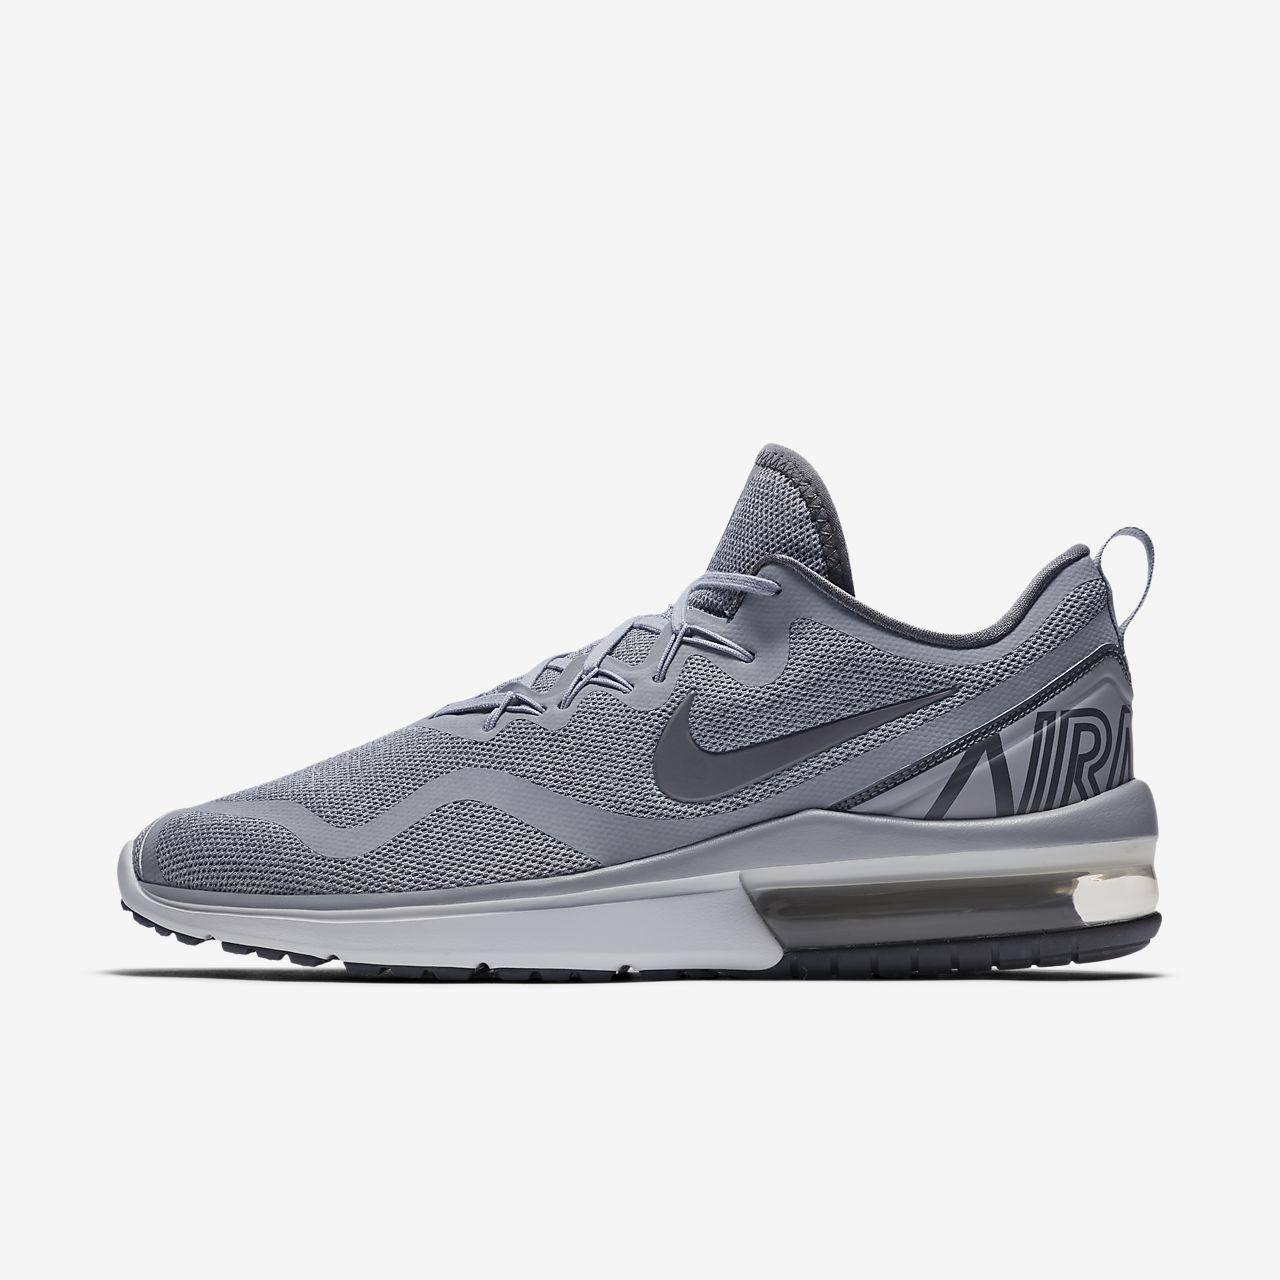 Max Running Air Nike LU Men's Fury Shoe 5Z4SOn